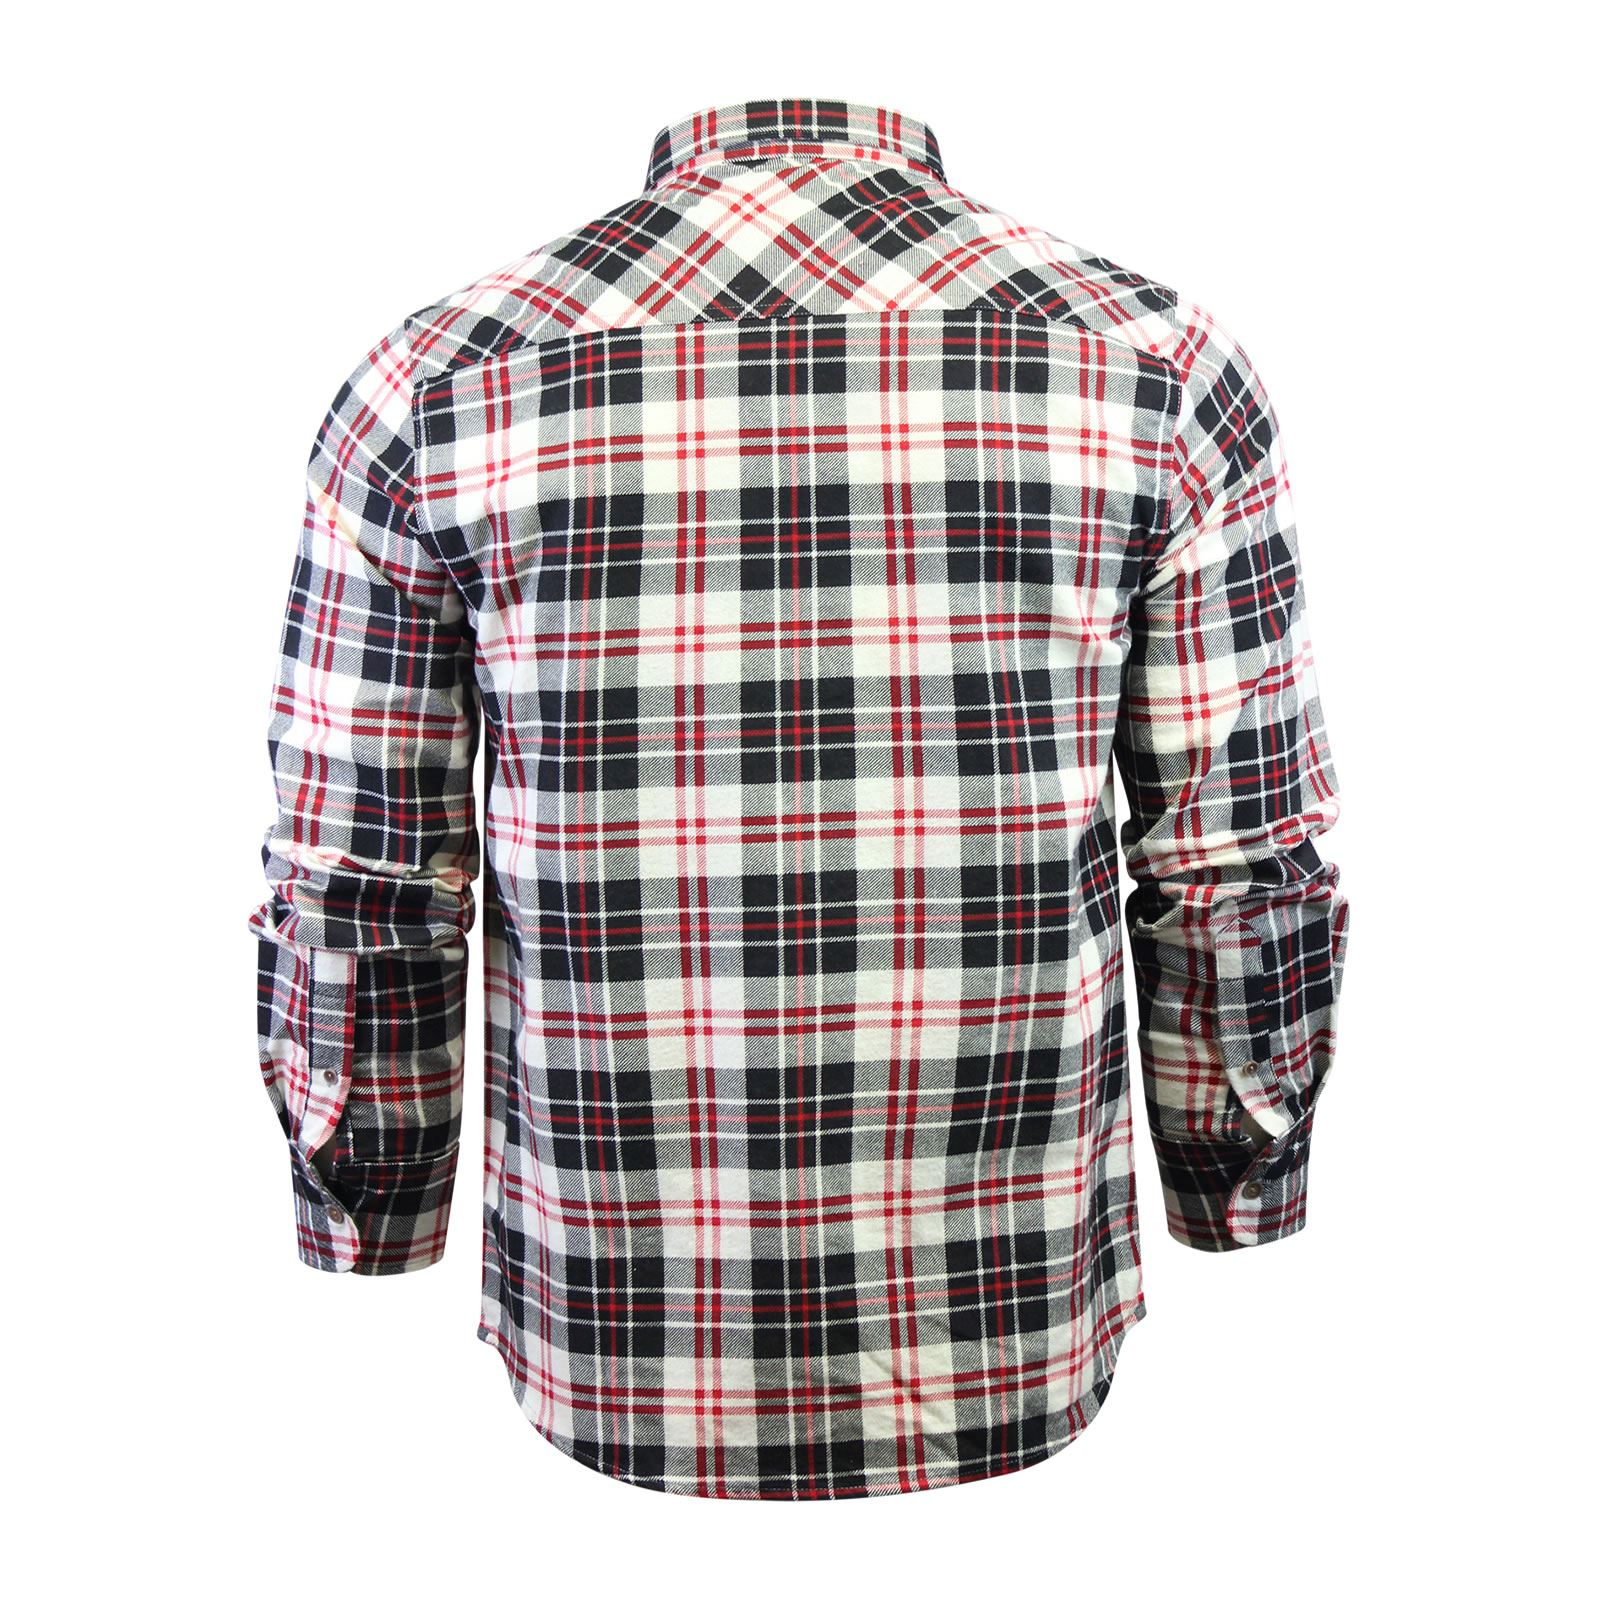 Mens-Check-Shirt-Brave-Soul-Flannel-Brushed-Cotton-Long-Sleeve-Casual-Top thumbnail 93